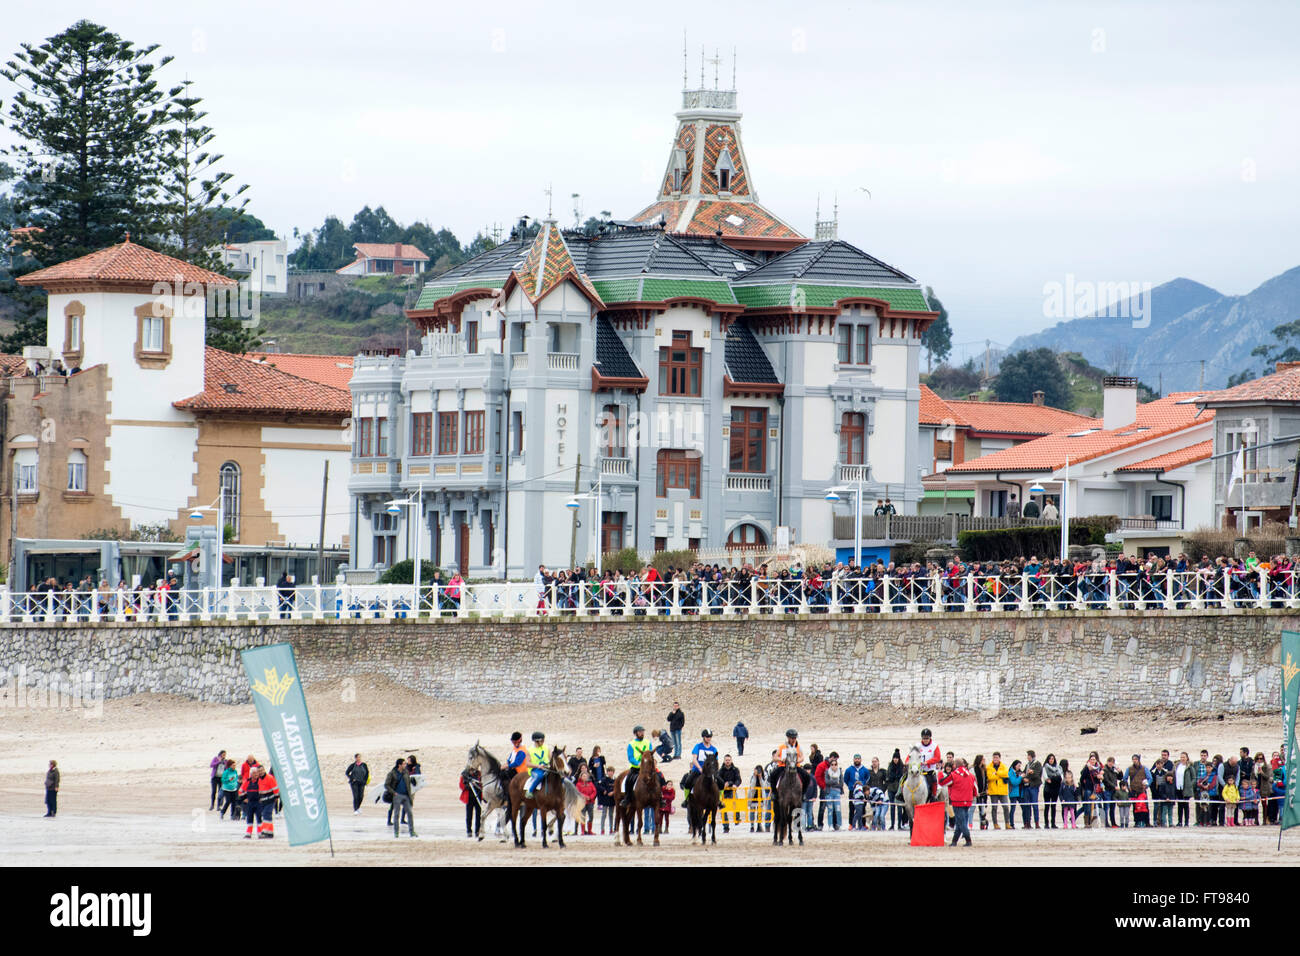 Ribadesella, Spain. 25th March, 2016. The horses after the start of the first race of horse race at Sta. Marina - Stock Image